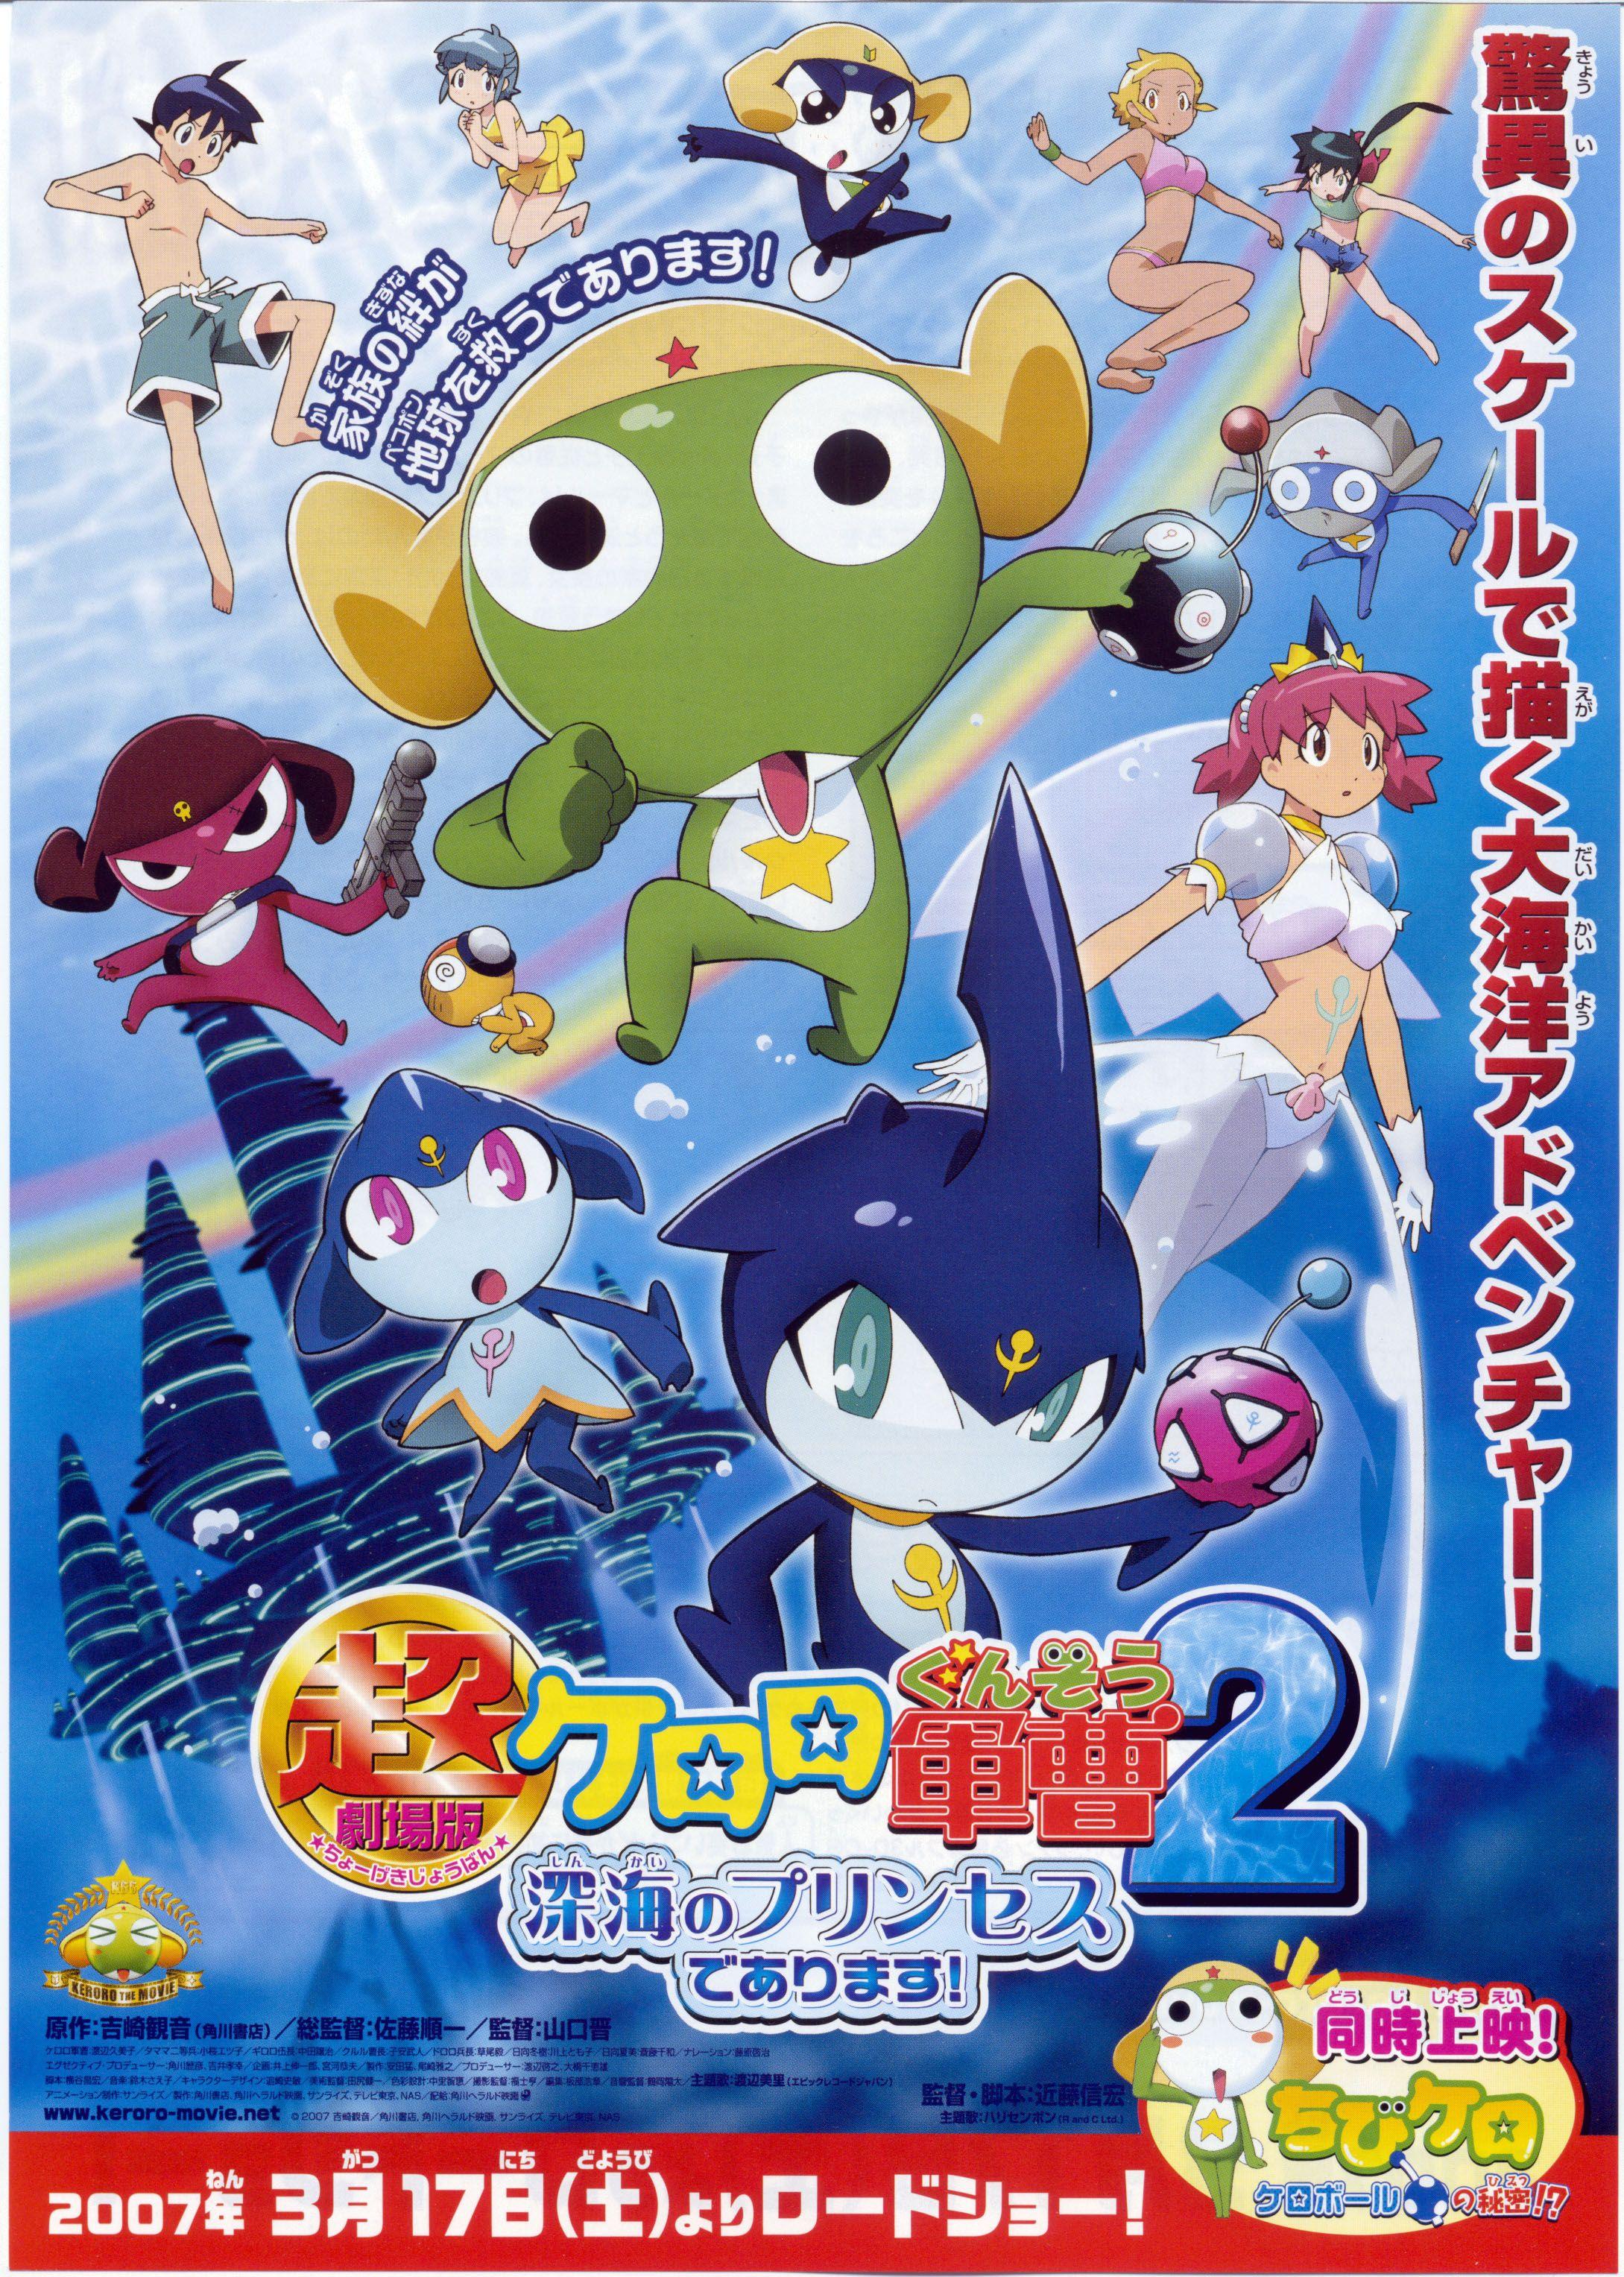 keroro gunsou the movie 2 poster otaku paradise